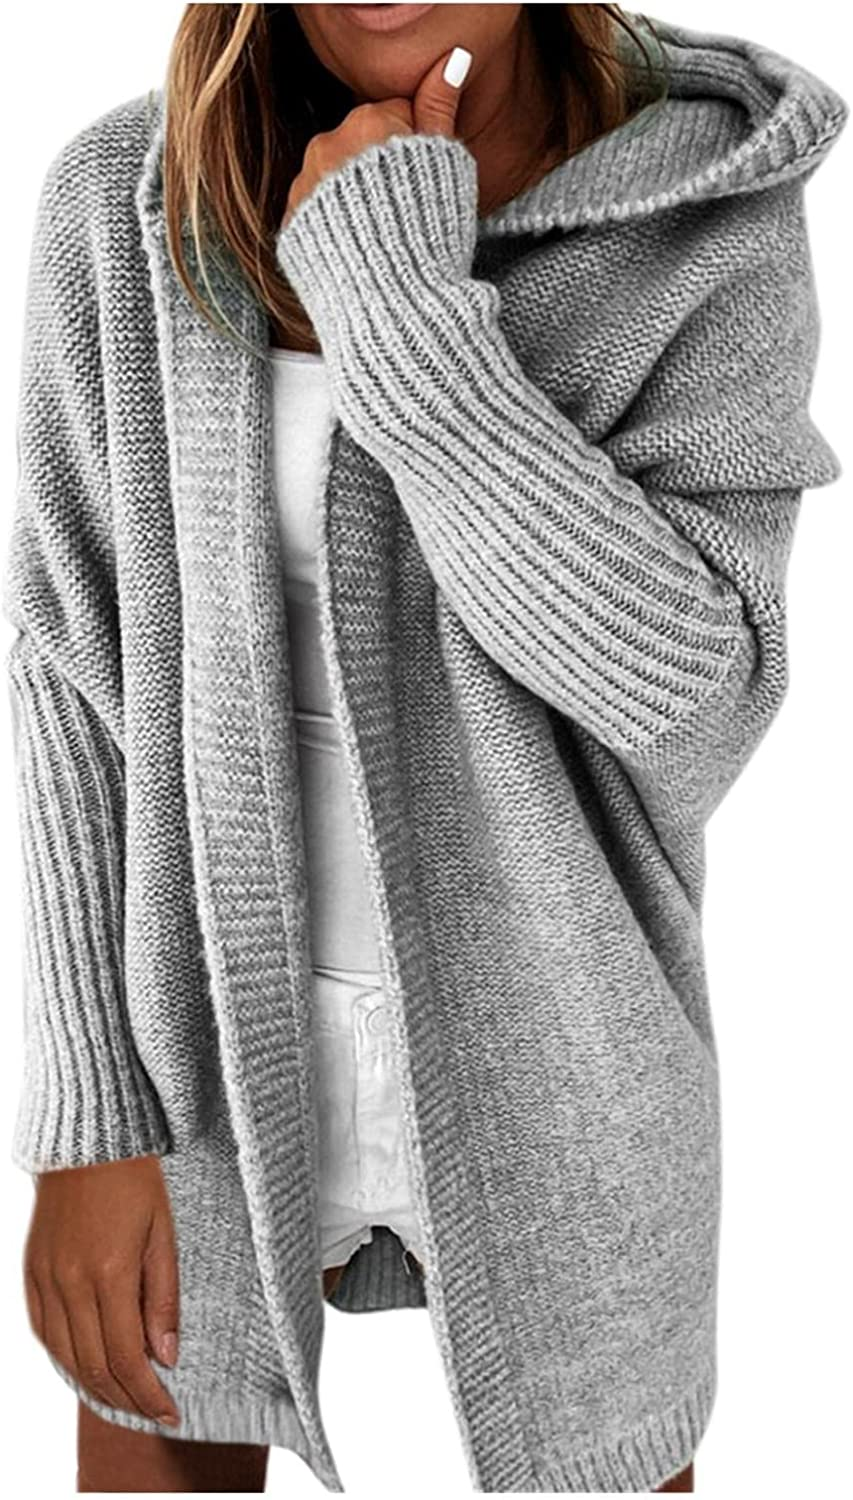 Deluxe XINXX Hooded Sweaters Over item handling Cardigans for Loose Sleeve Women Long Open